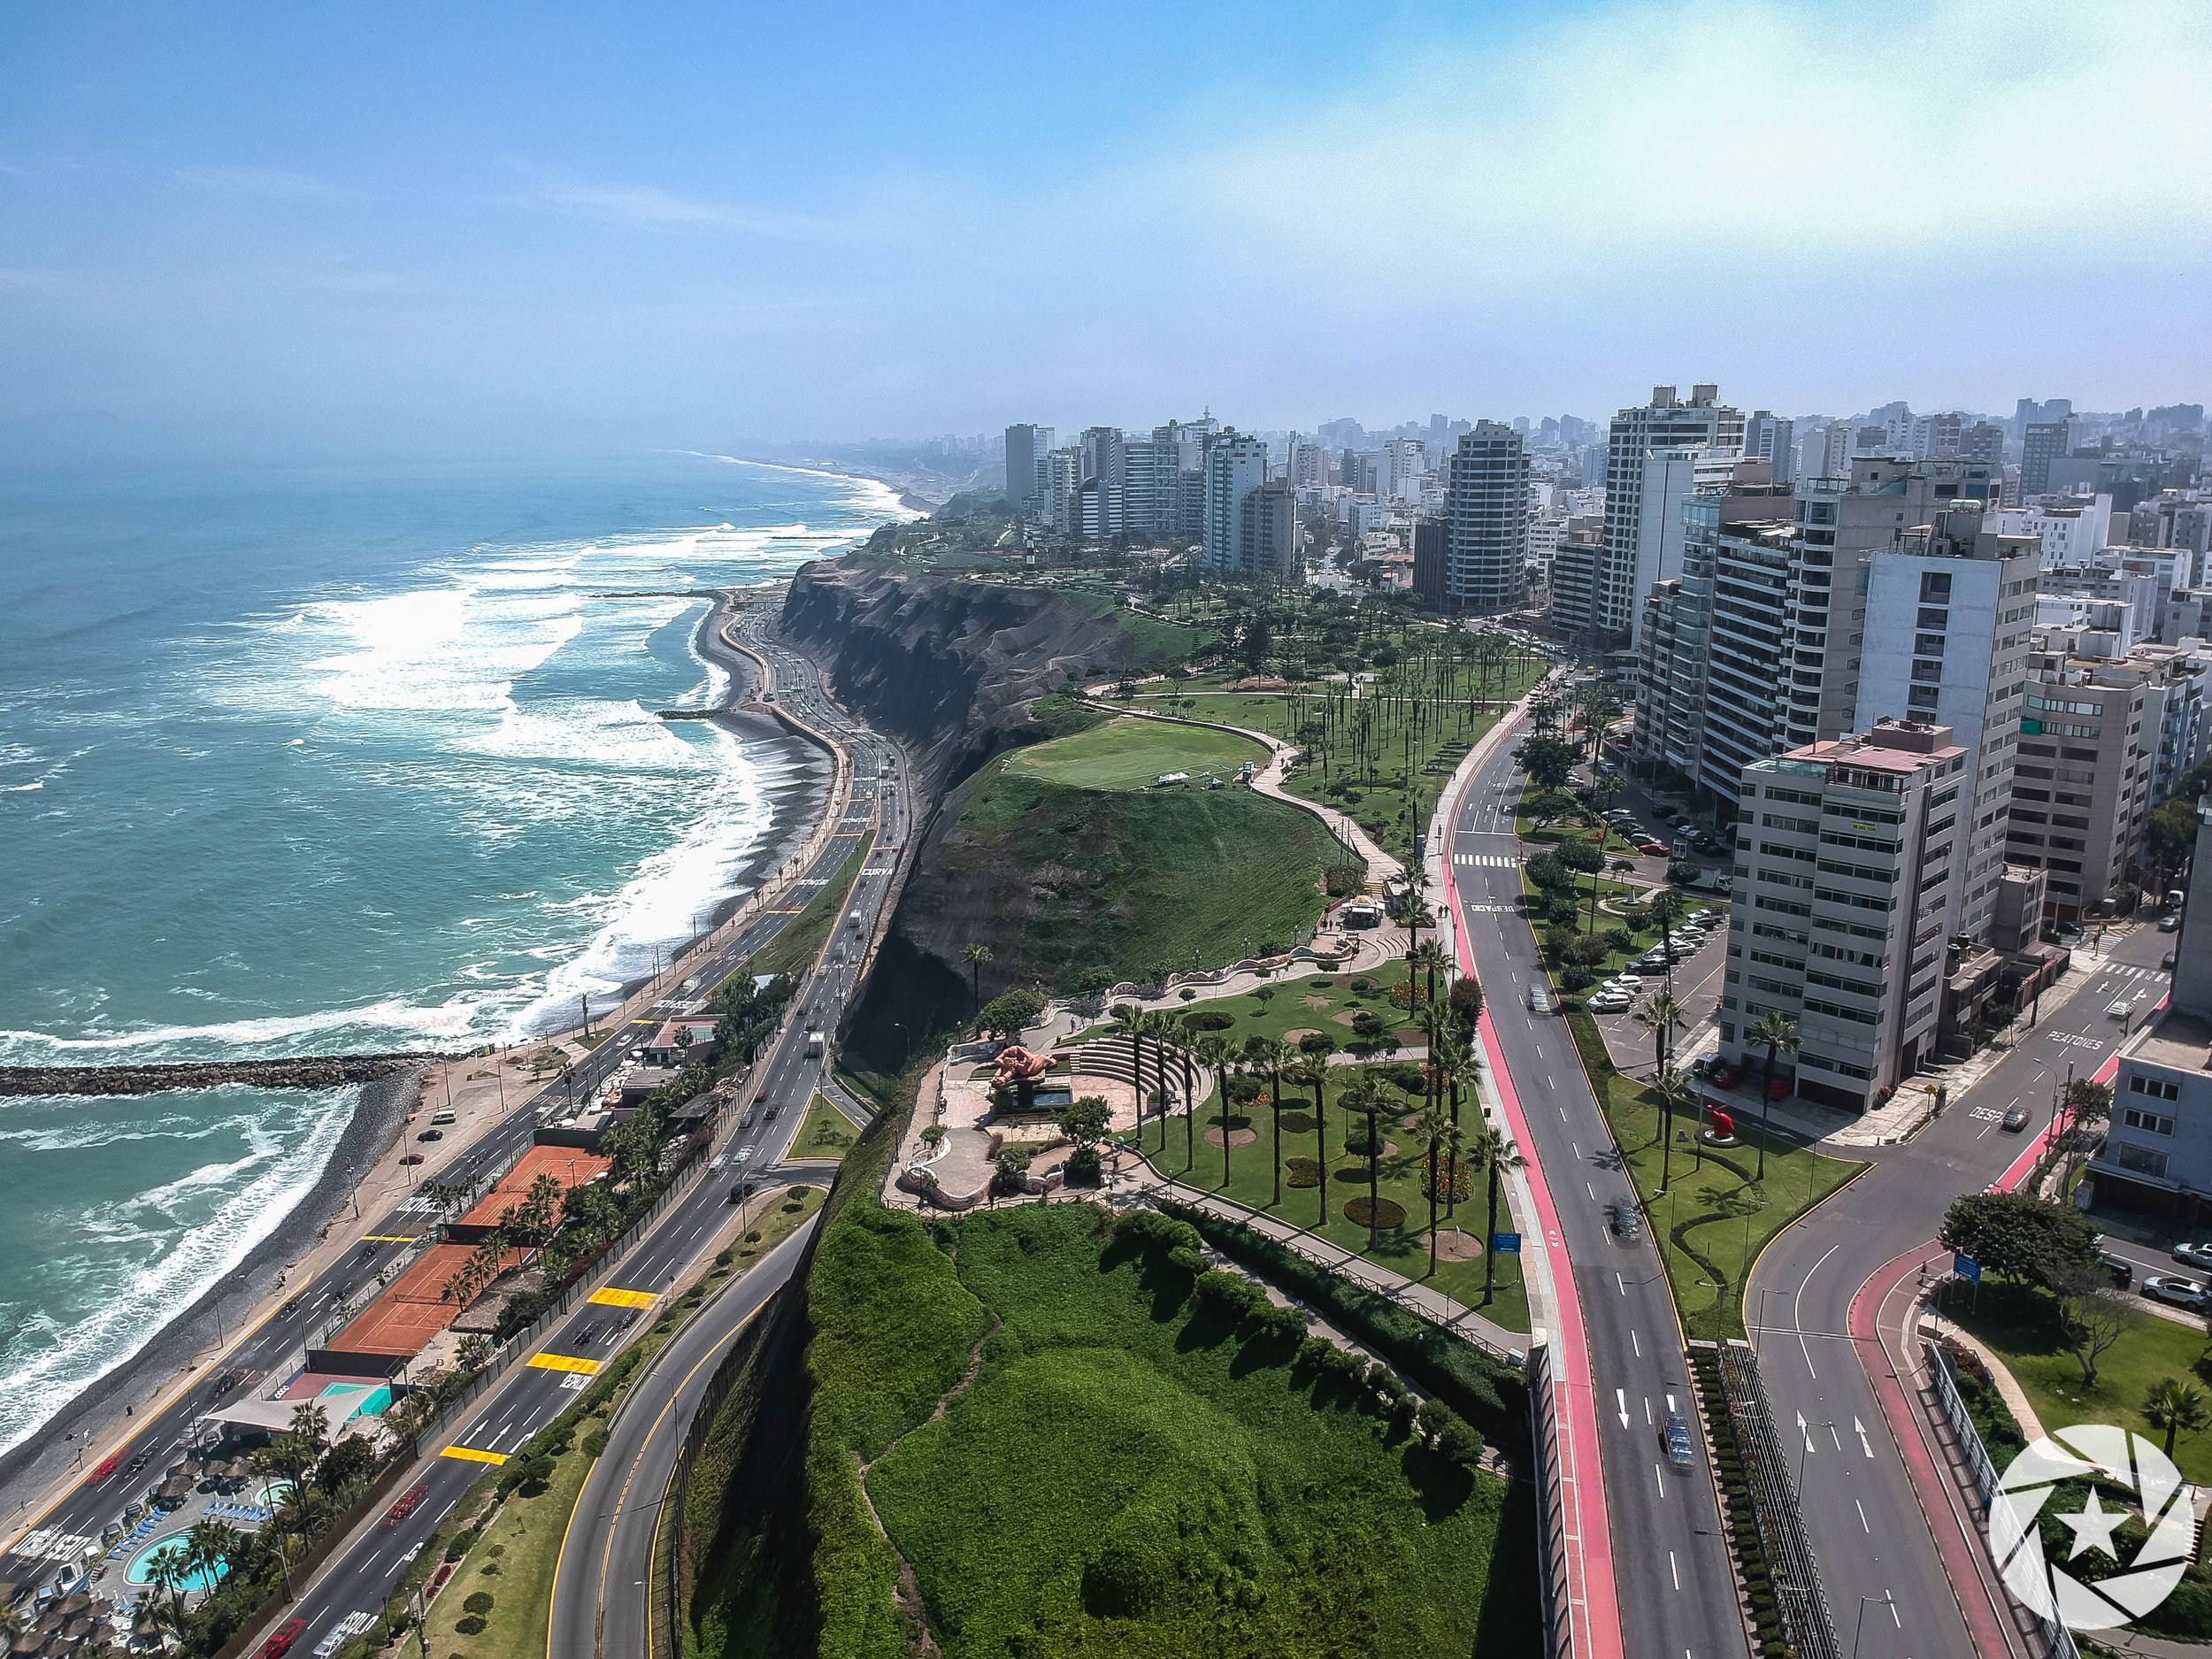 Beautiful Miraflores, LIma on the Pacific Coast of Peru